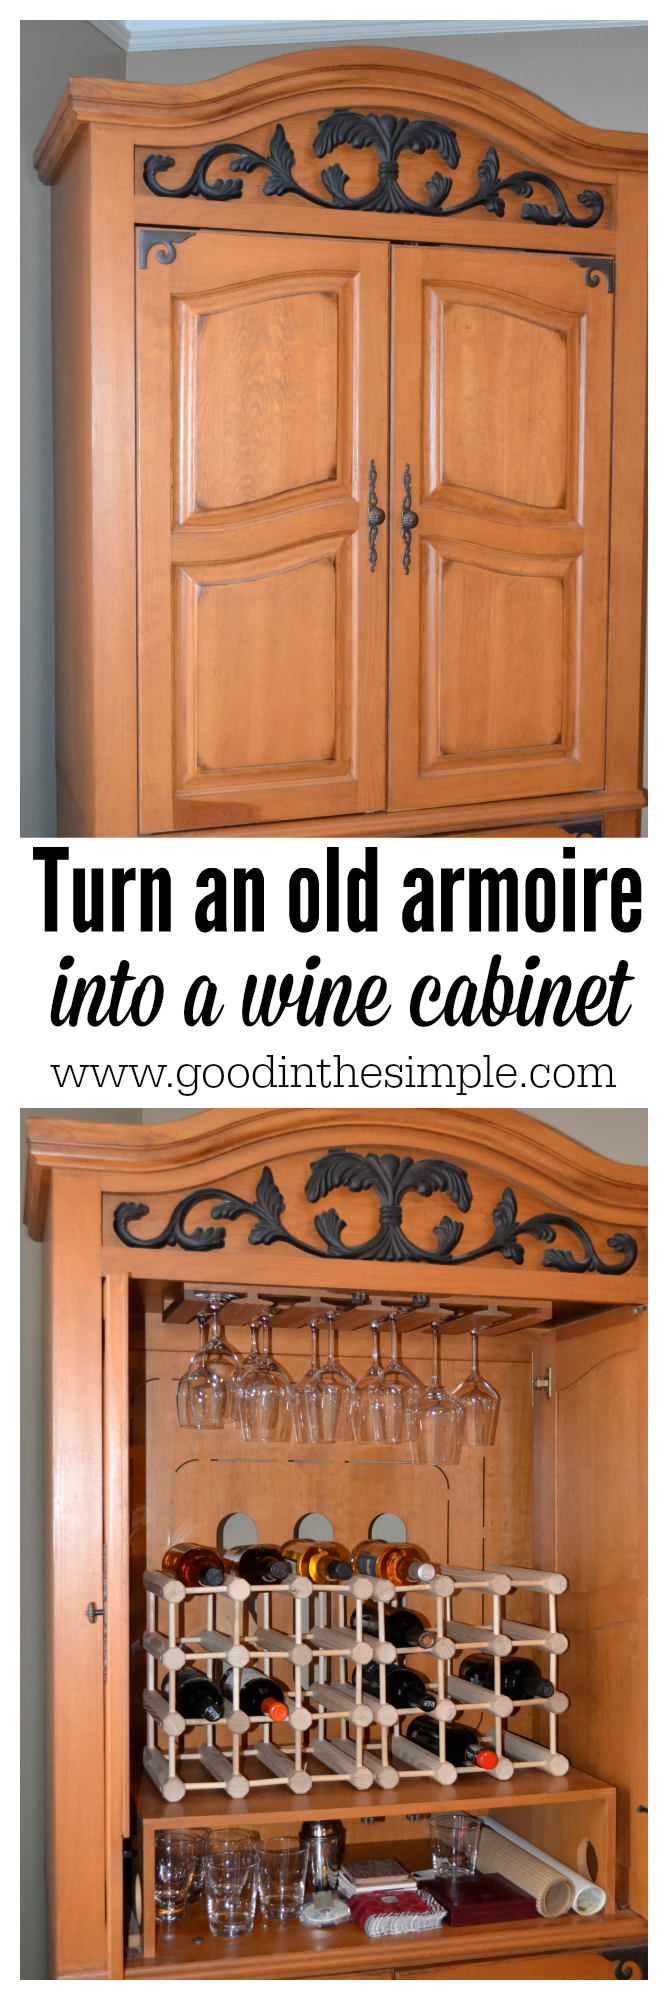 Turn A TV Armoire Into A Cabinet For Wine Bottles And Glasses